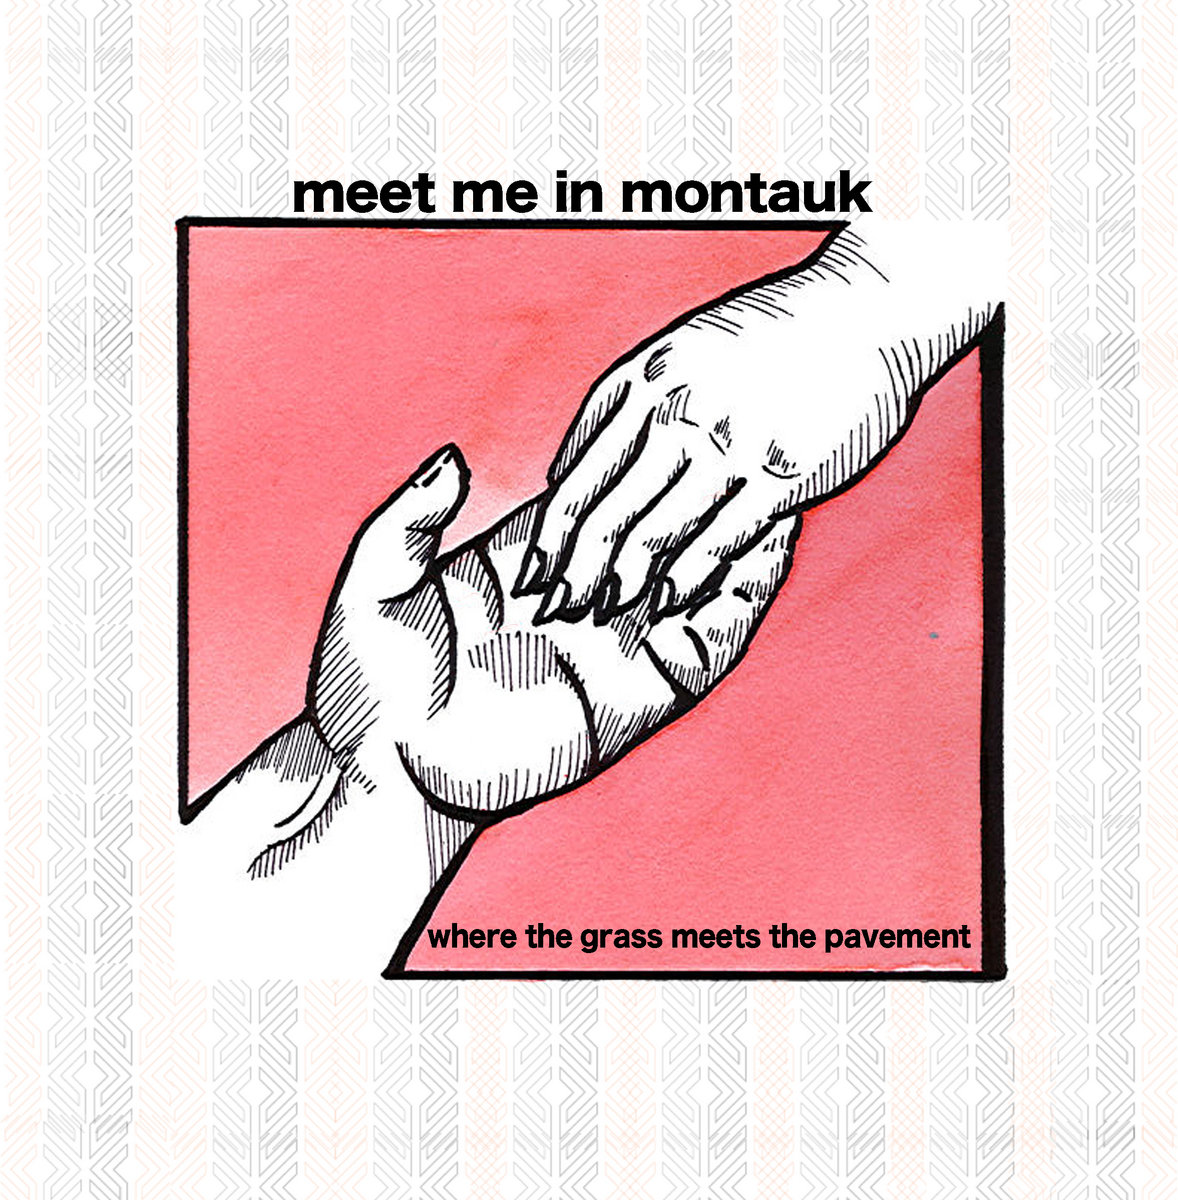 where the grass meets the pavement | meet me in montauk